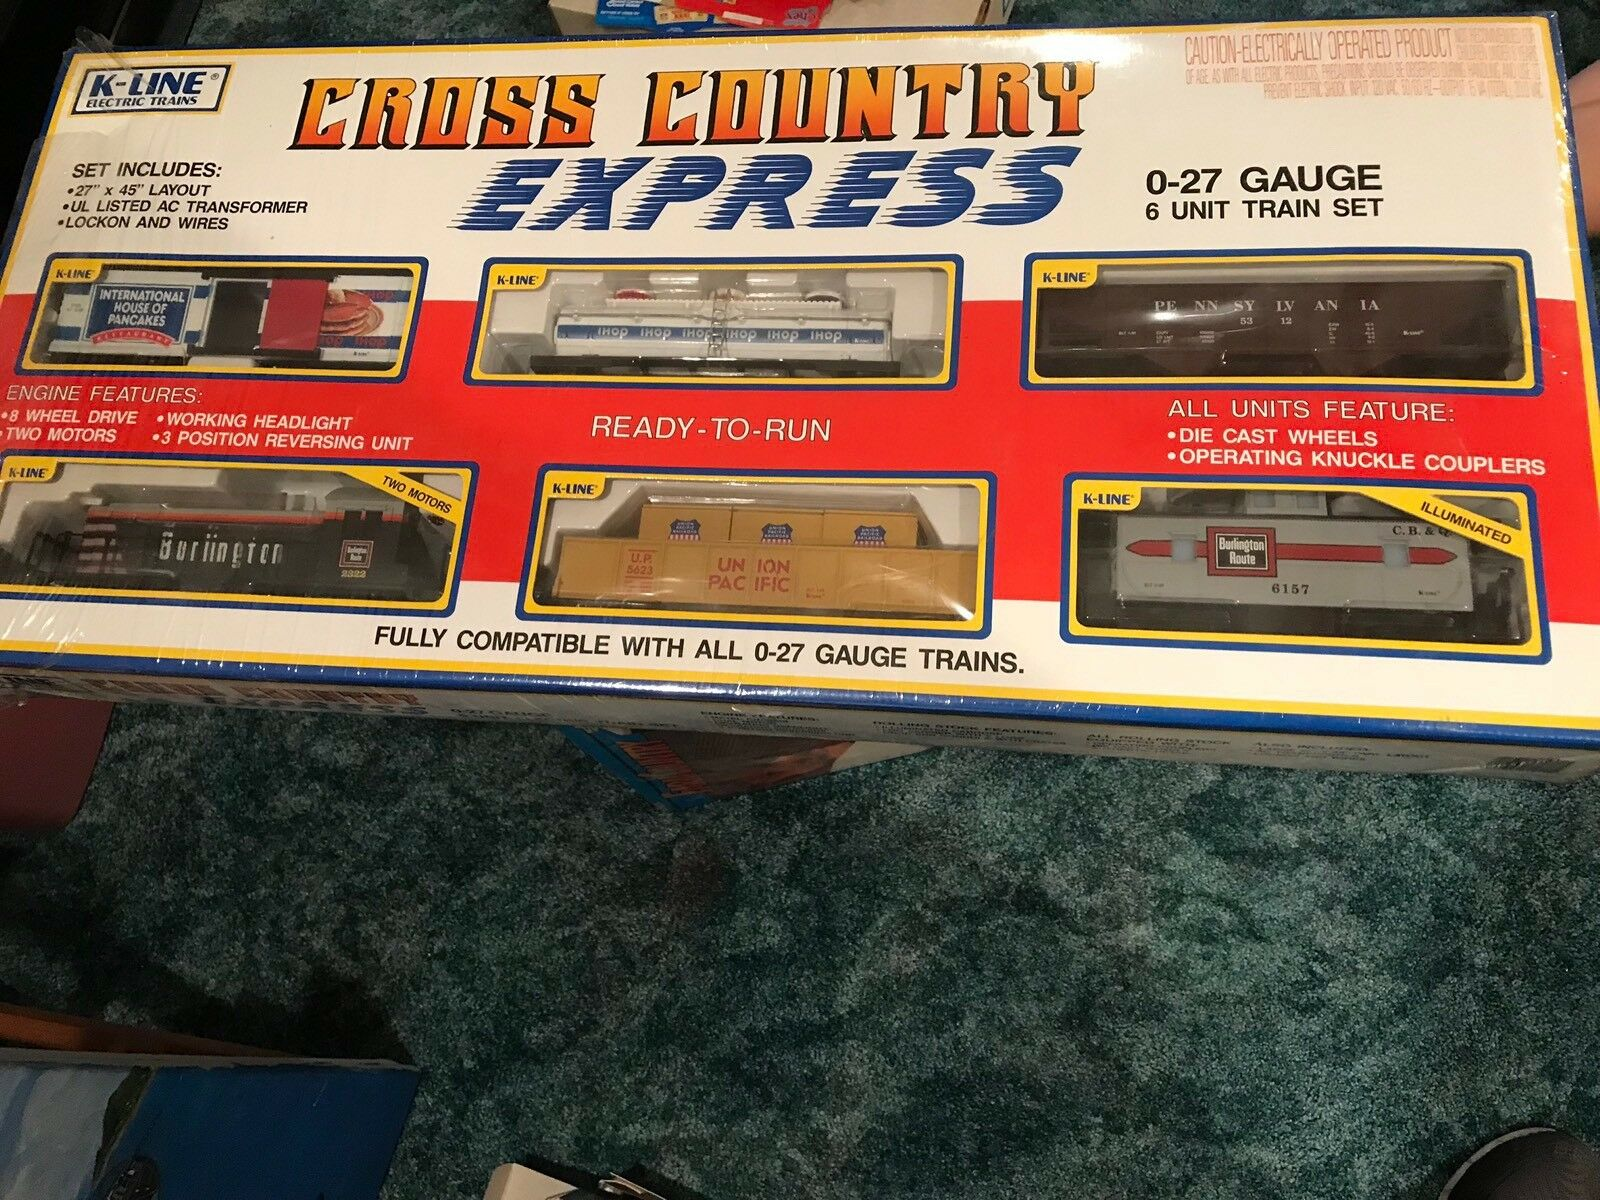 K-Line Cross Country Express Train Set 0-27